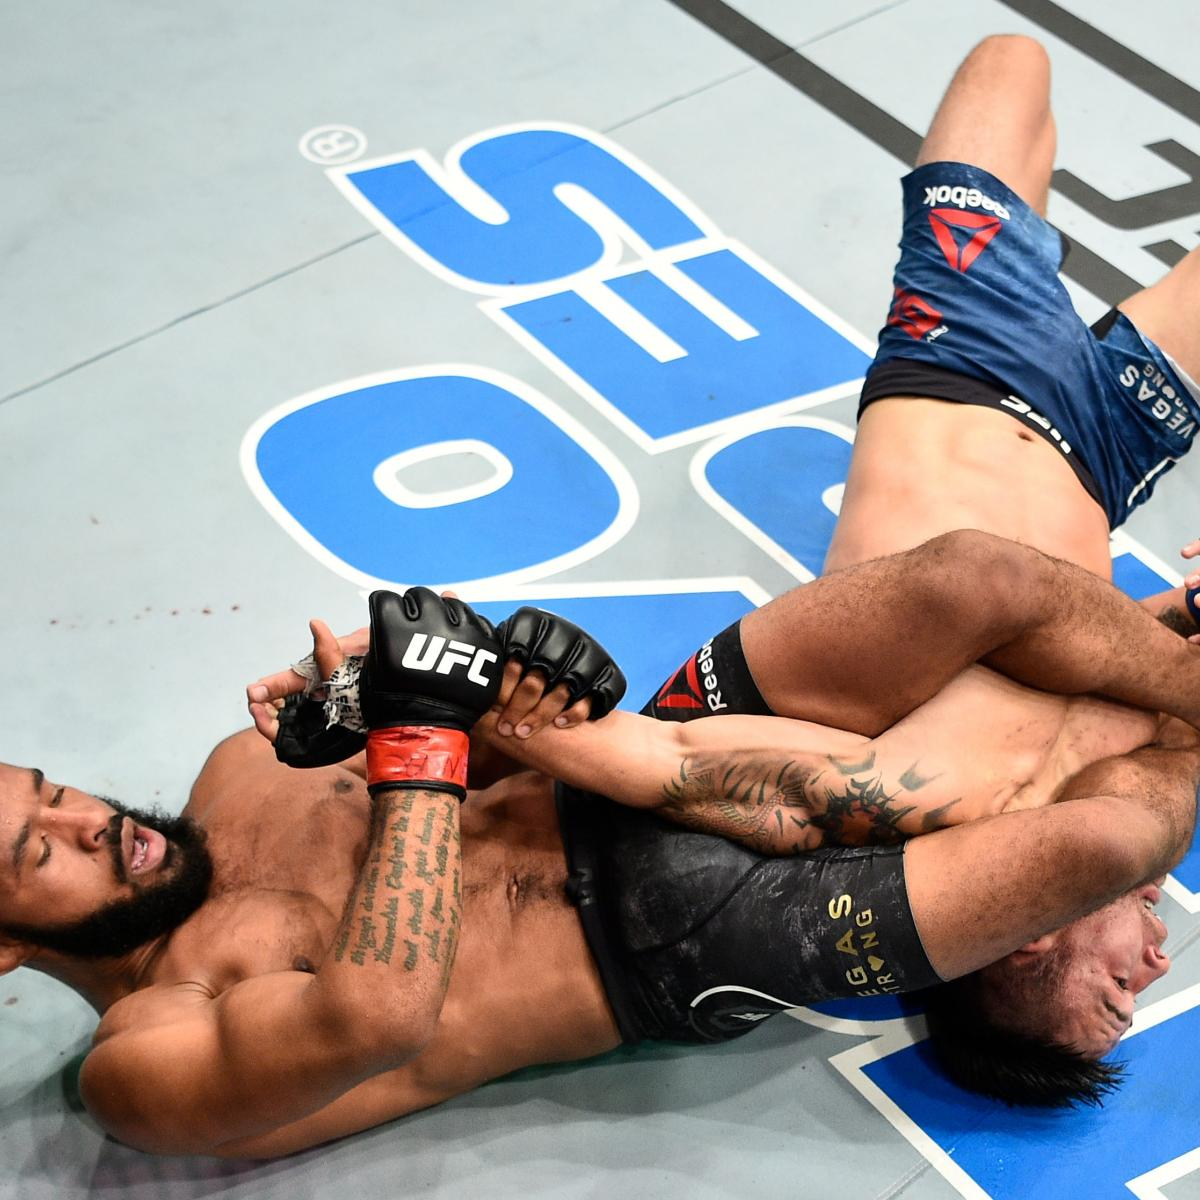 The Question: What Is the Greatest Submission in MMA History?